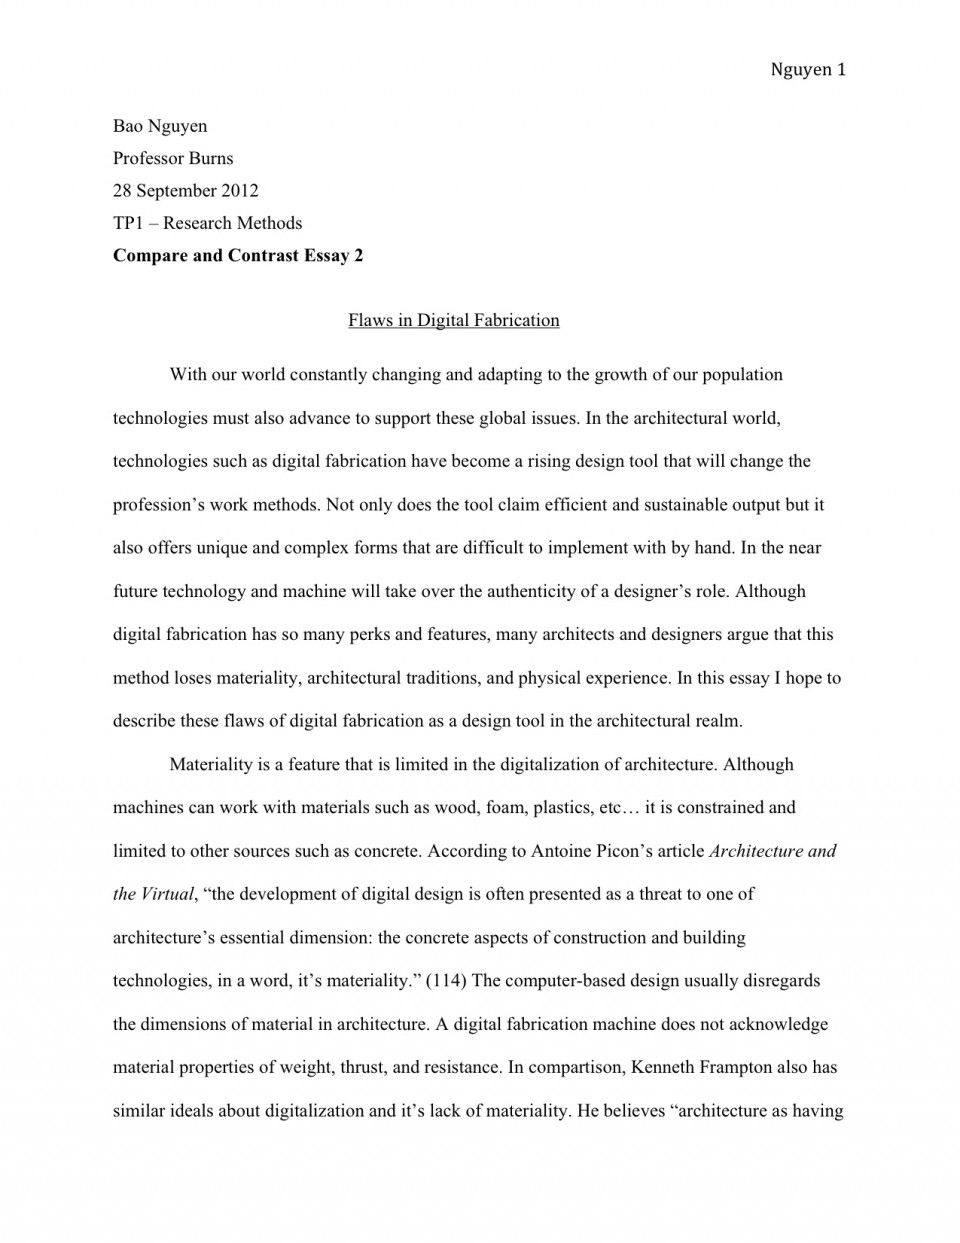 007 Essay Example Good Hooks For Essays Tp1 3 Unforgettable About Gun Control Examples Of Expository Persuasive 960